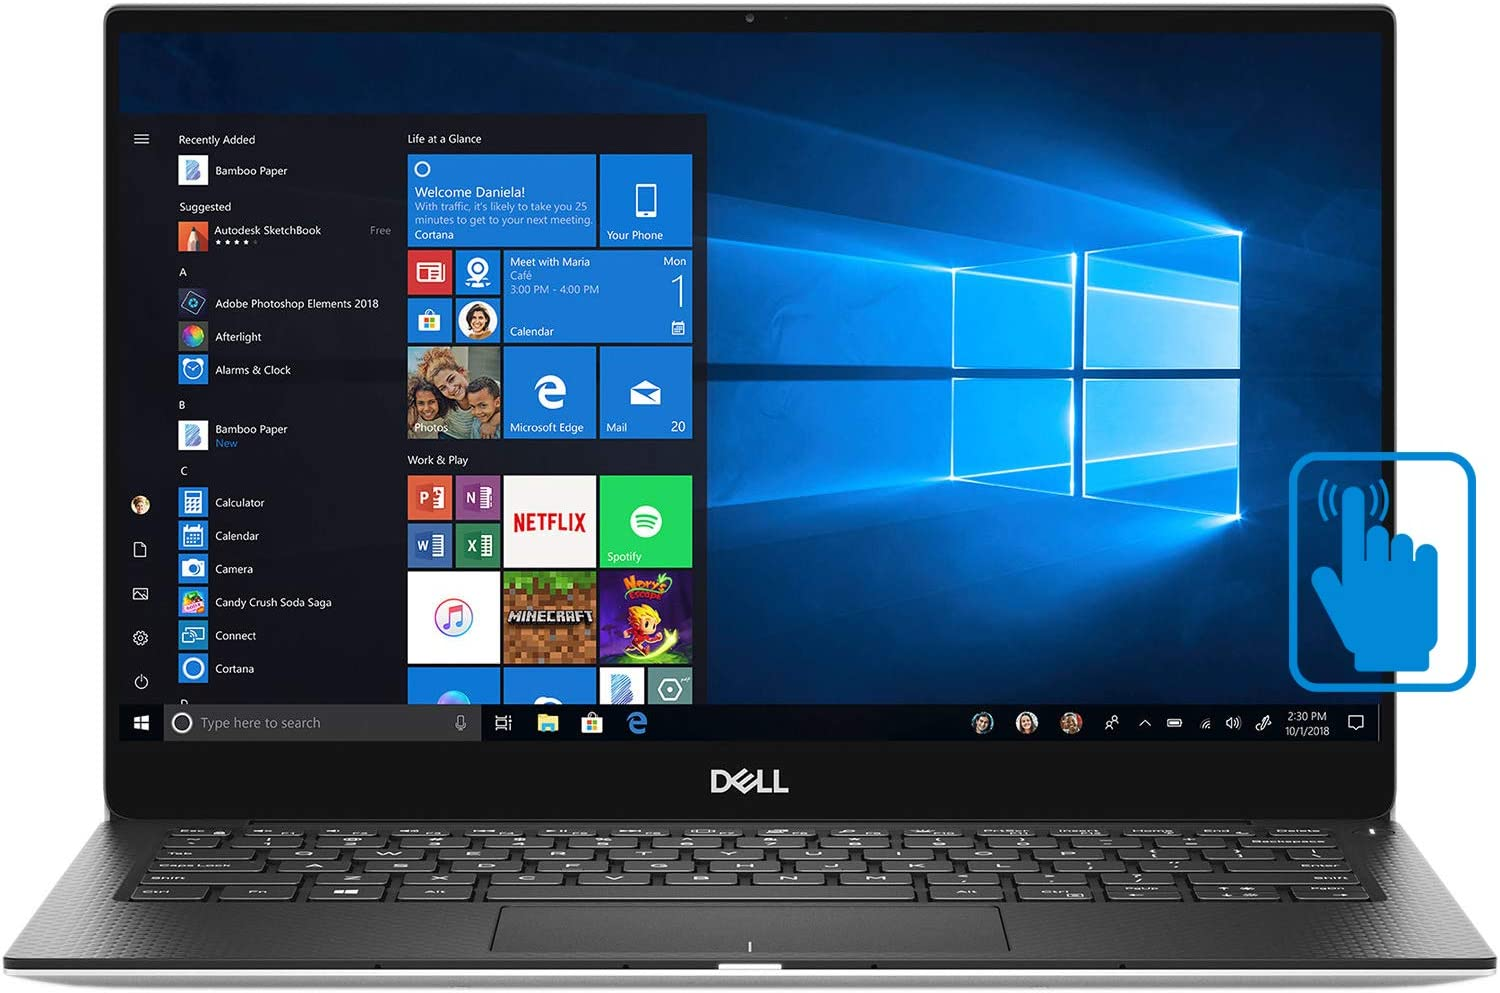 "Dell XPS7390 13"" InfinityEdge Touchscreen Laptop, Newest 10th Gen Intel i5-10210U, 8GB RAM, 256GB SSD, Windows 10 Home"